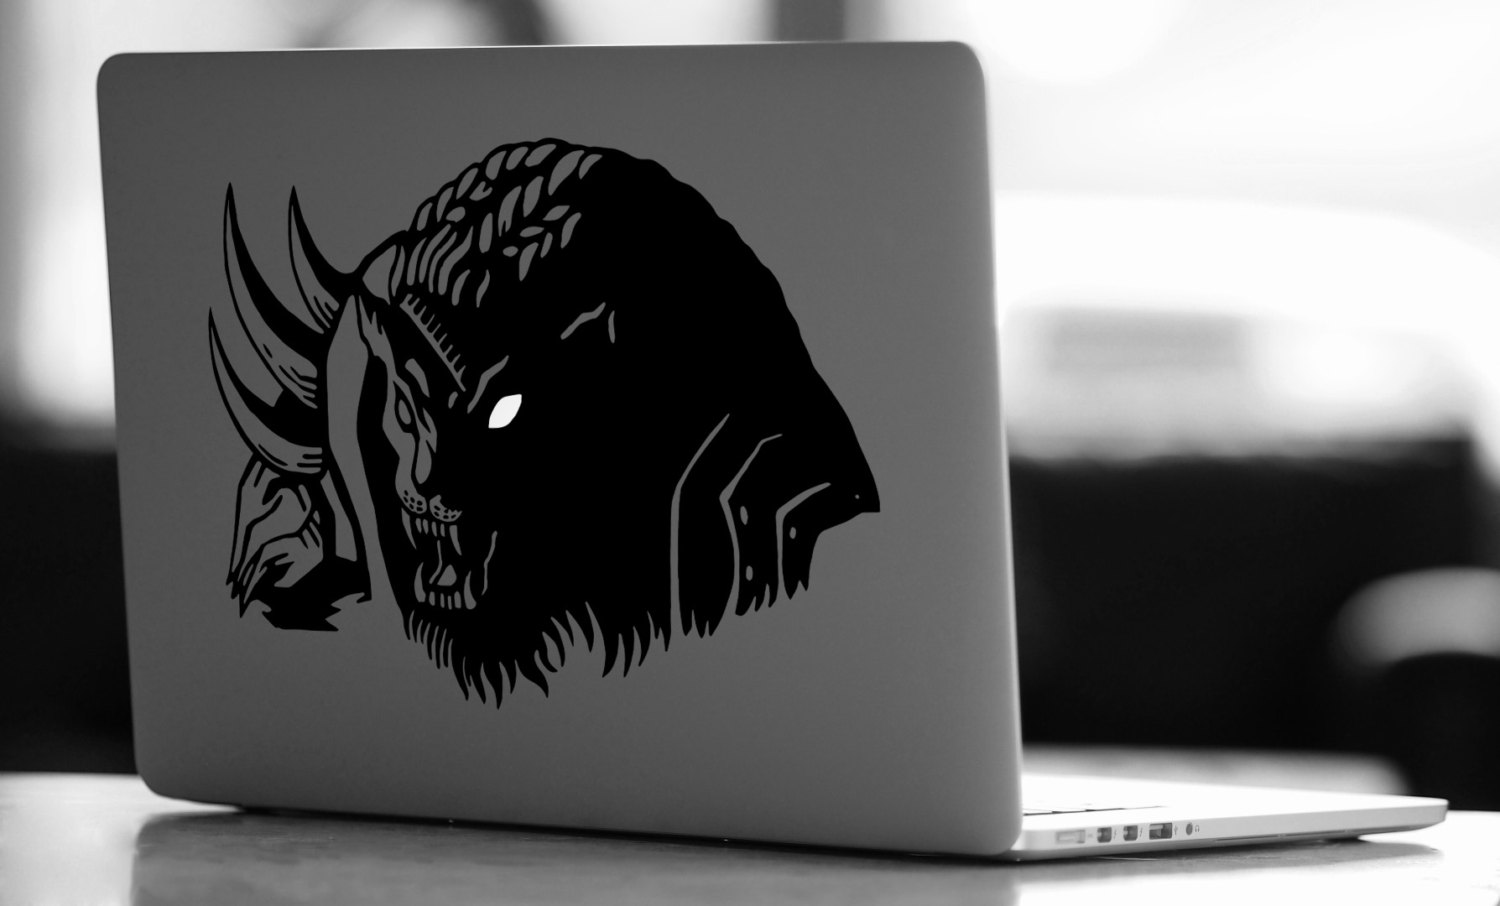 Rengar with glowing eye Vinyl Decal League of Legends Decal.